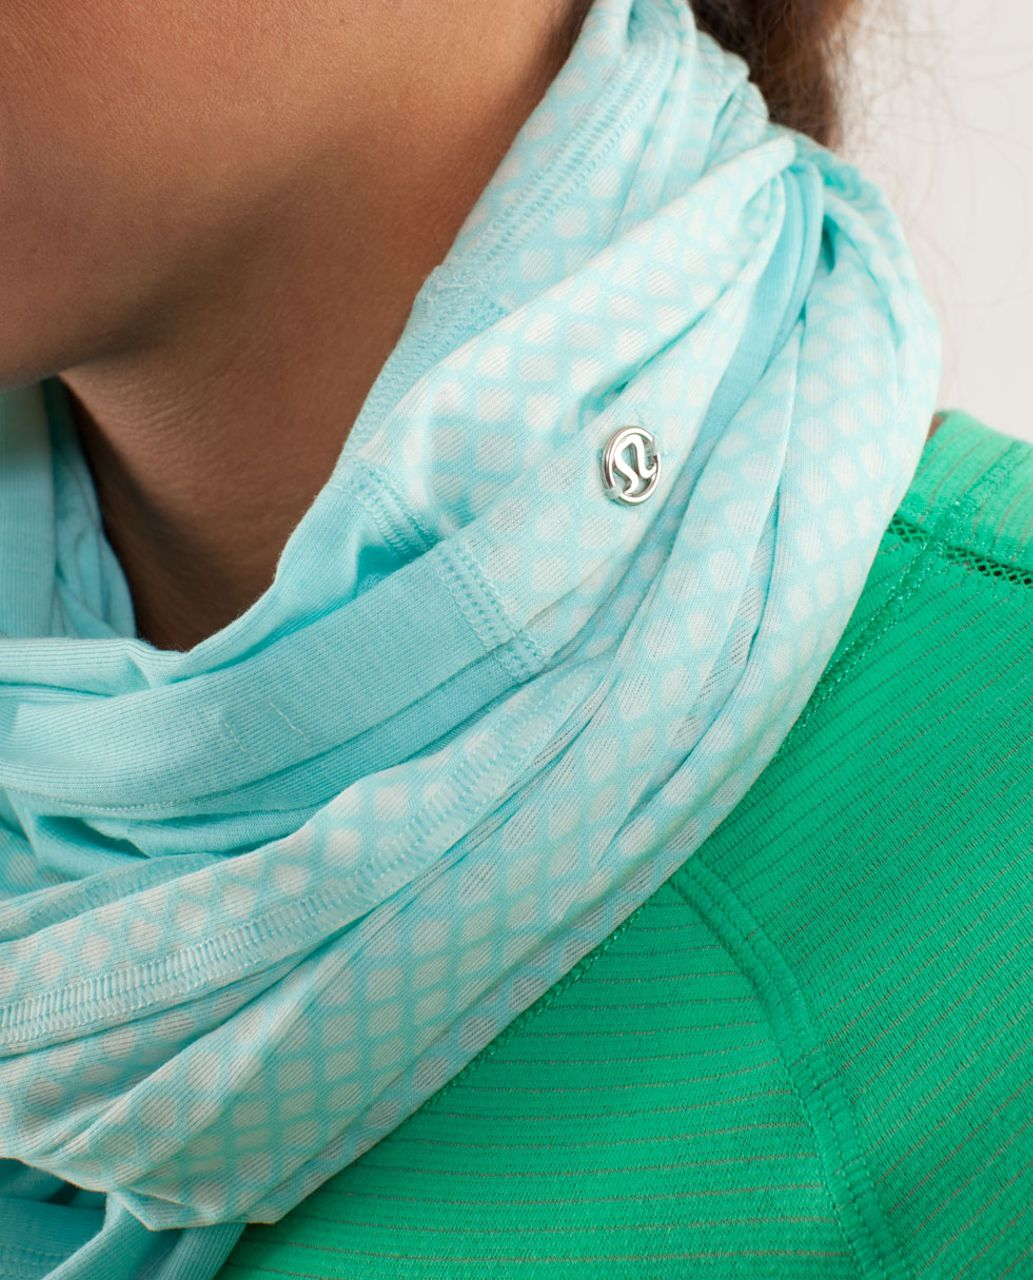 Lululemon Twist And Shout Scarf - Aquamarine / Mesh Burnout Aquamarine